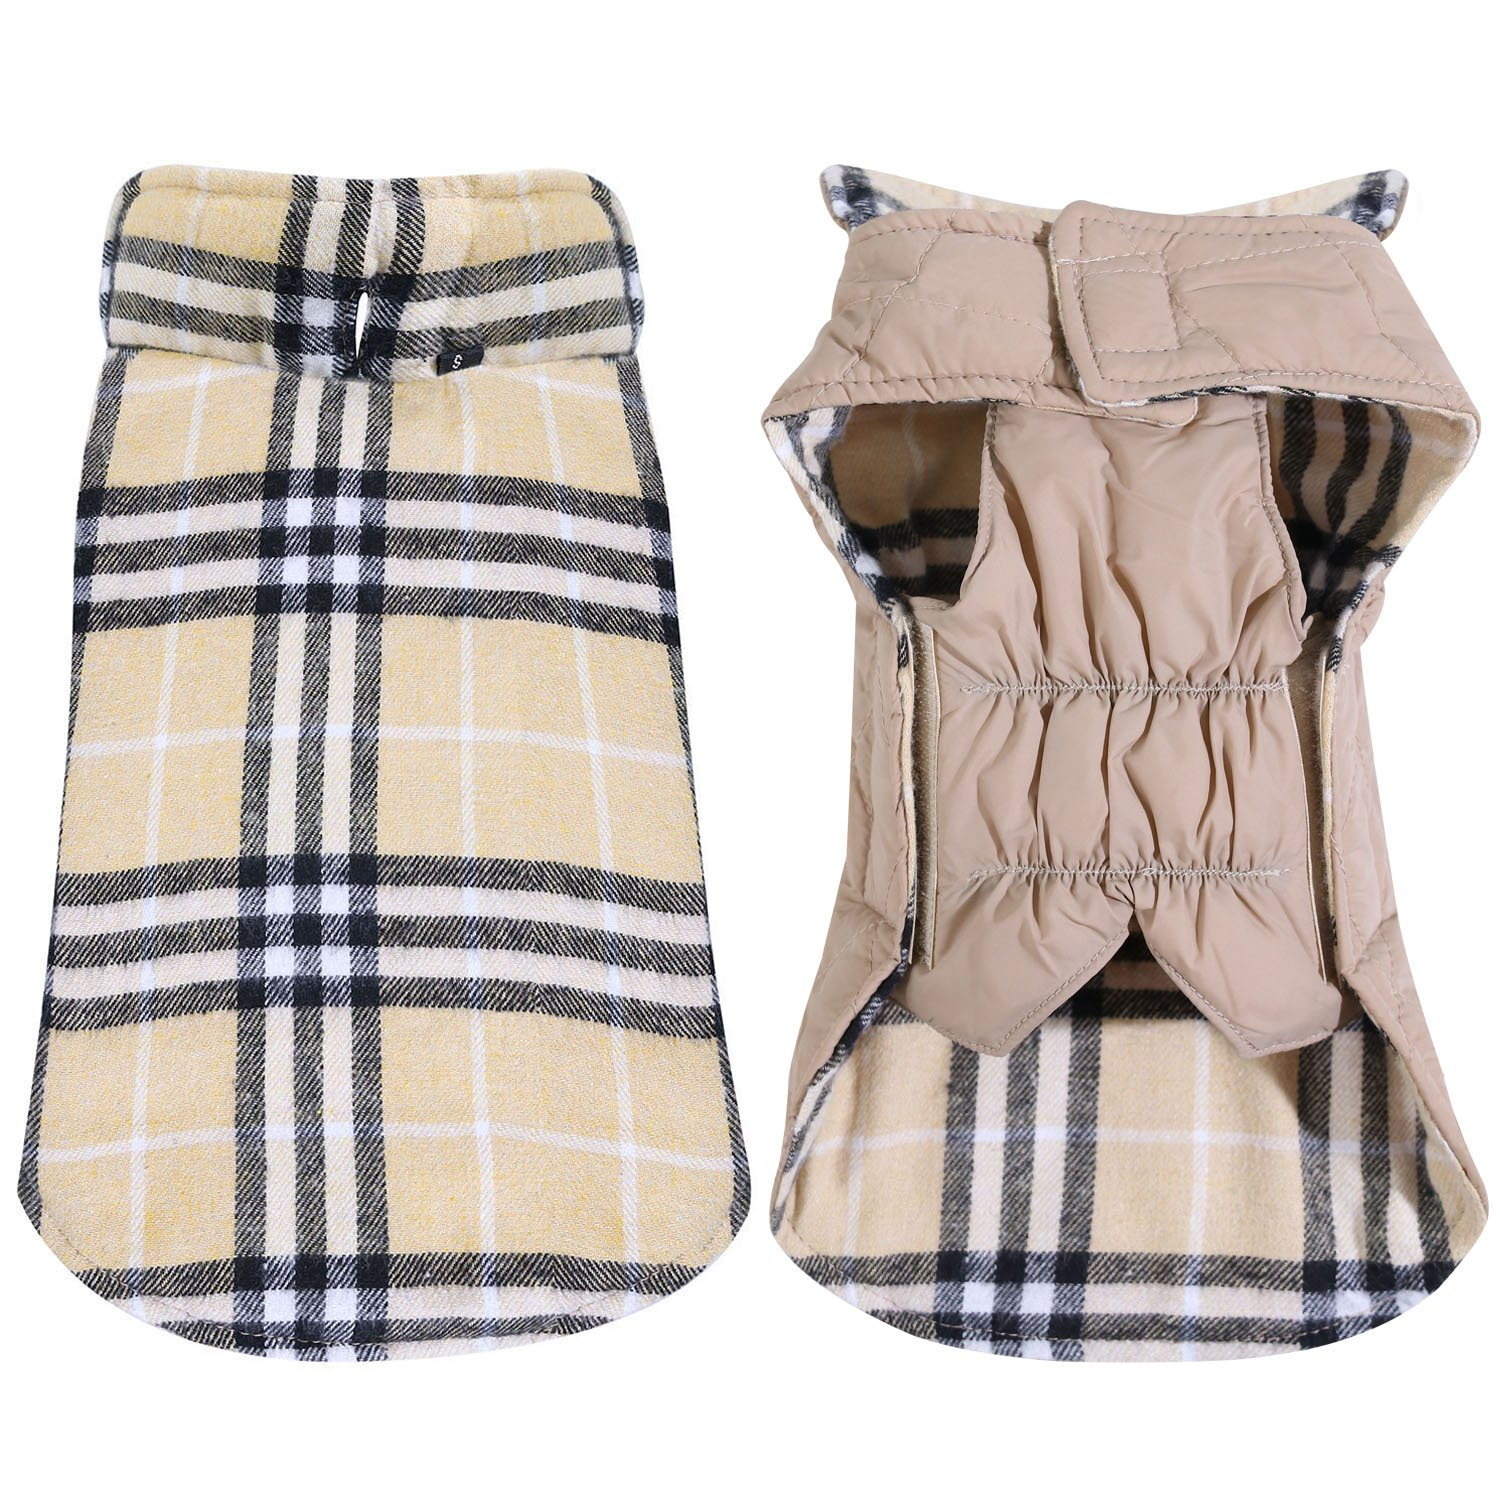 TPYQdirect Dog Jacket Waterproof Coat Windproof Pet Vest Warm Clothes Reversible British Style Plaid Winter Coats Cold Weather Jackets Sweater for Small Medium Large Dogs, Beige L